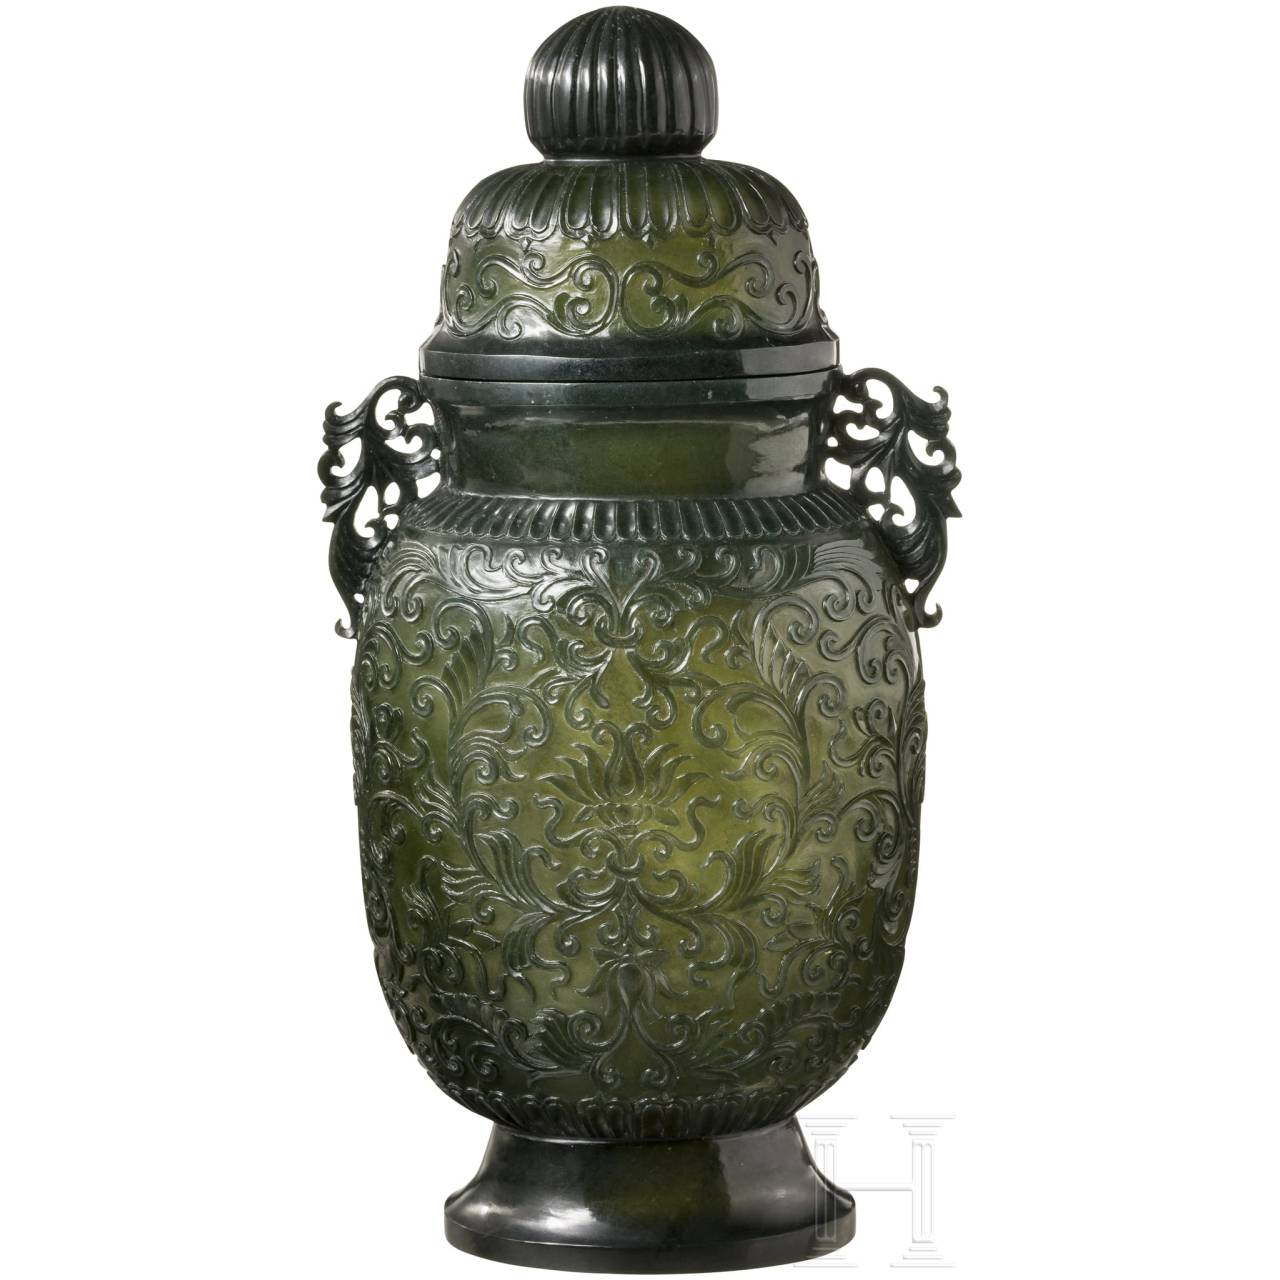 A large Chinese vase in chiselled jade, 19th century